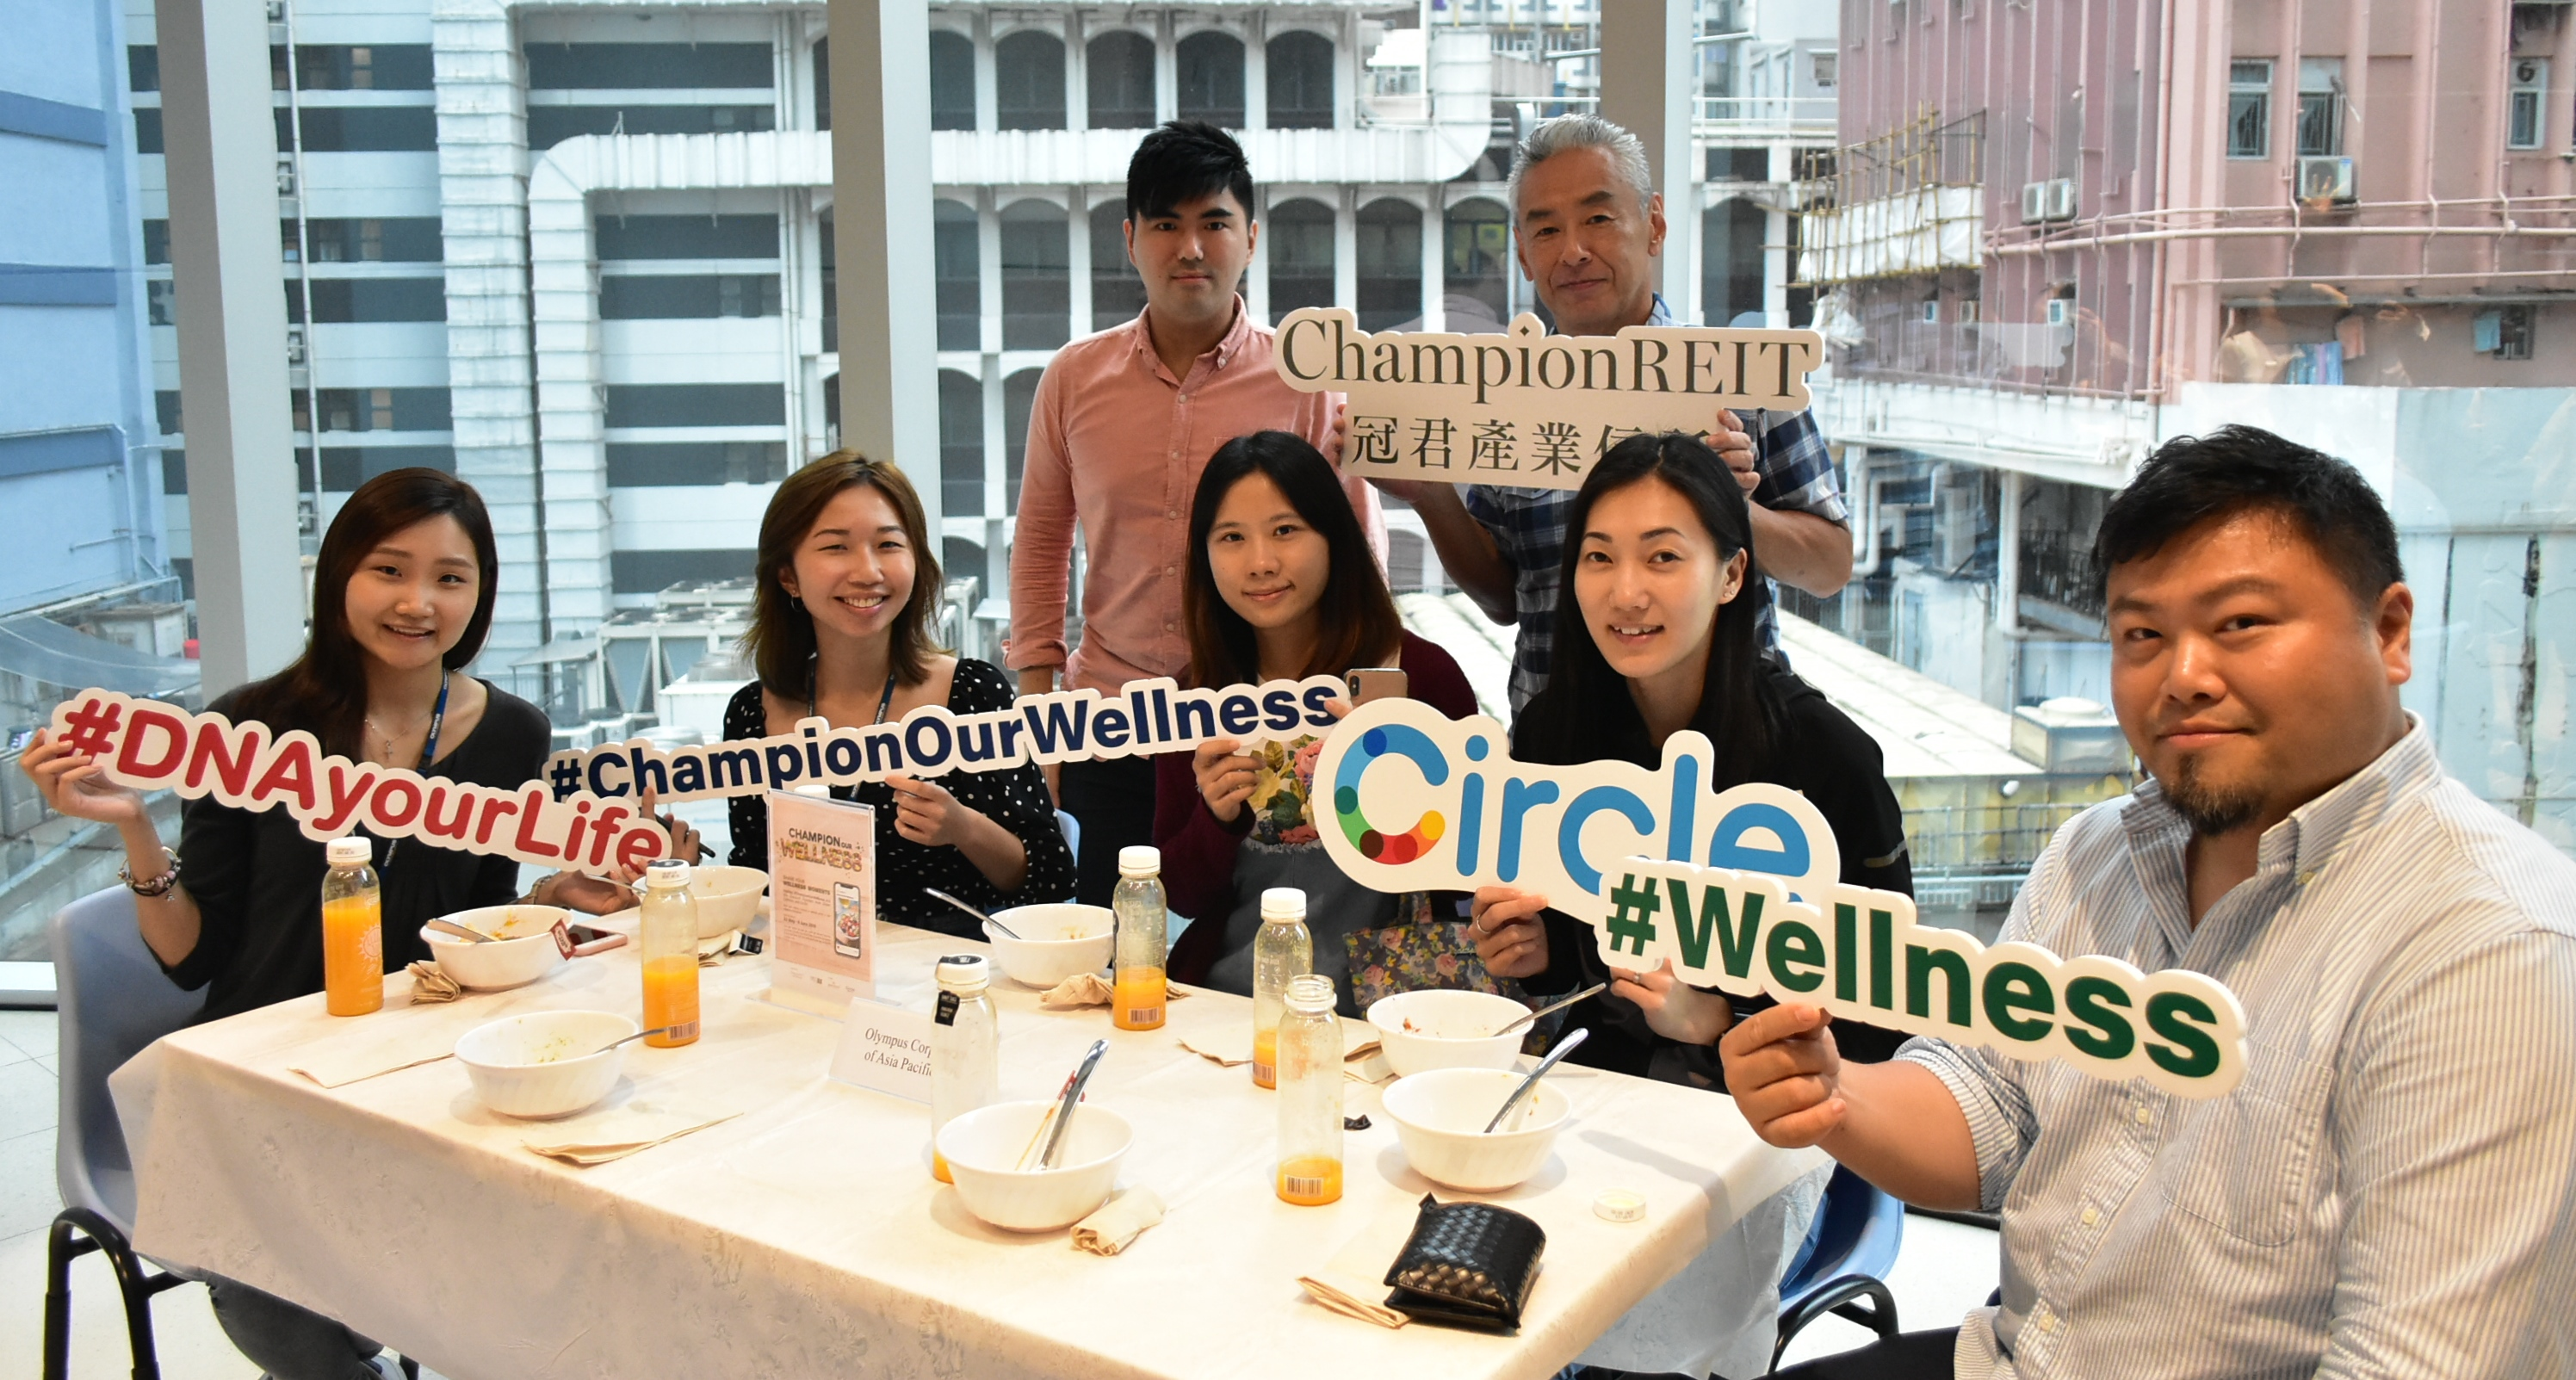 Our second Mindful Eating event was featured at Langham Place. Through enjoying a feast of vegetarian food buffet and sharing on mindful eating